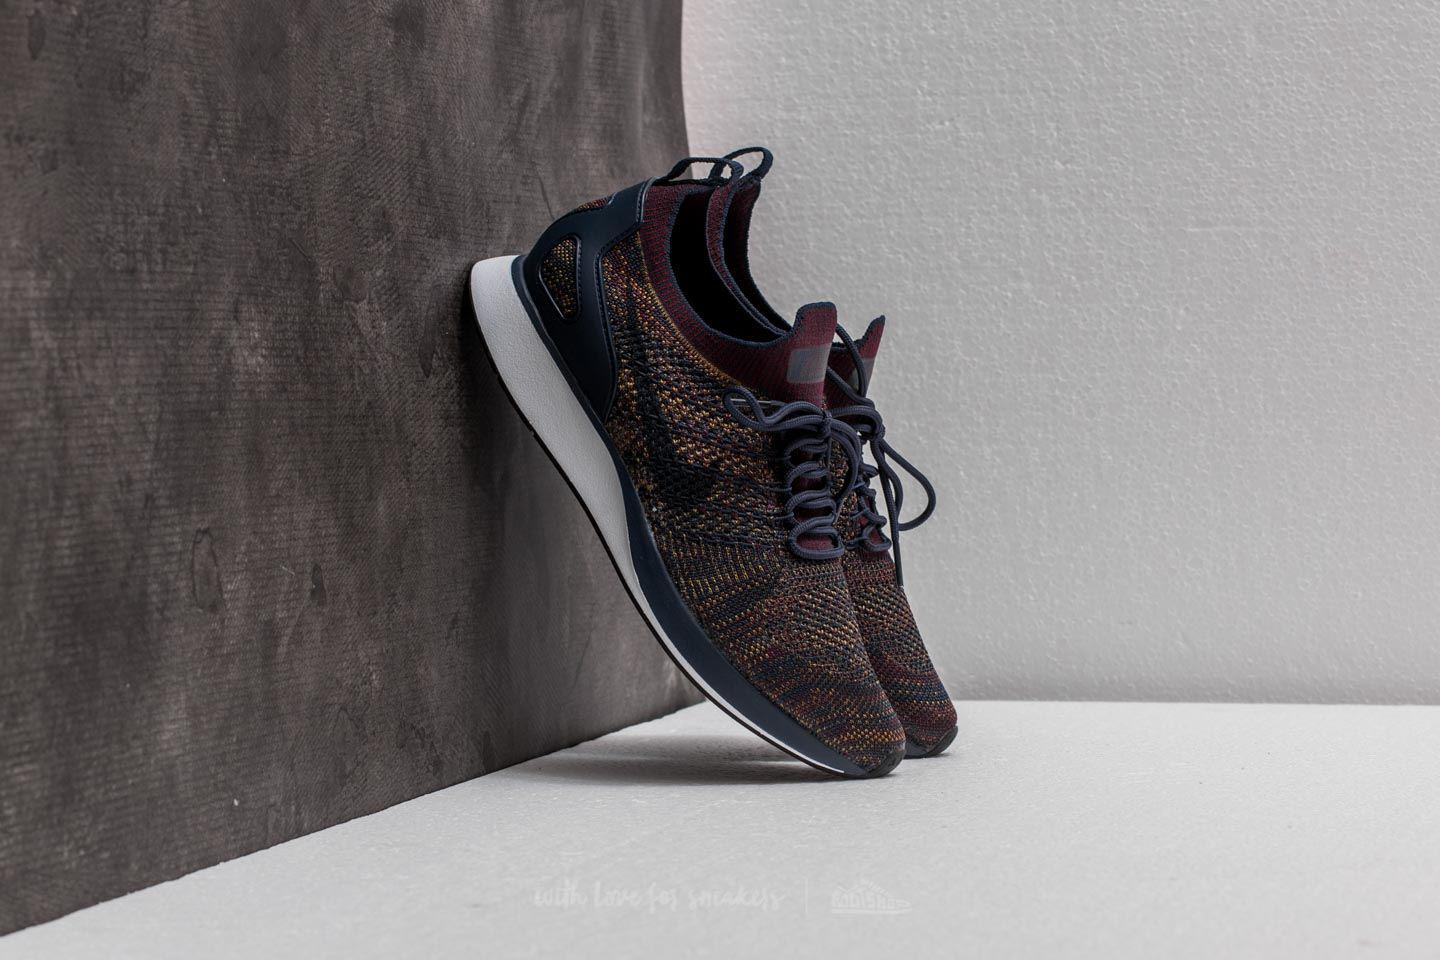 Lyst - Nike Air Zoom Mariah Flyknit Racer College Navy  Bordeaux in ... 2b6e740b4